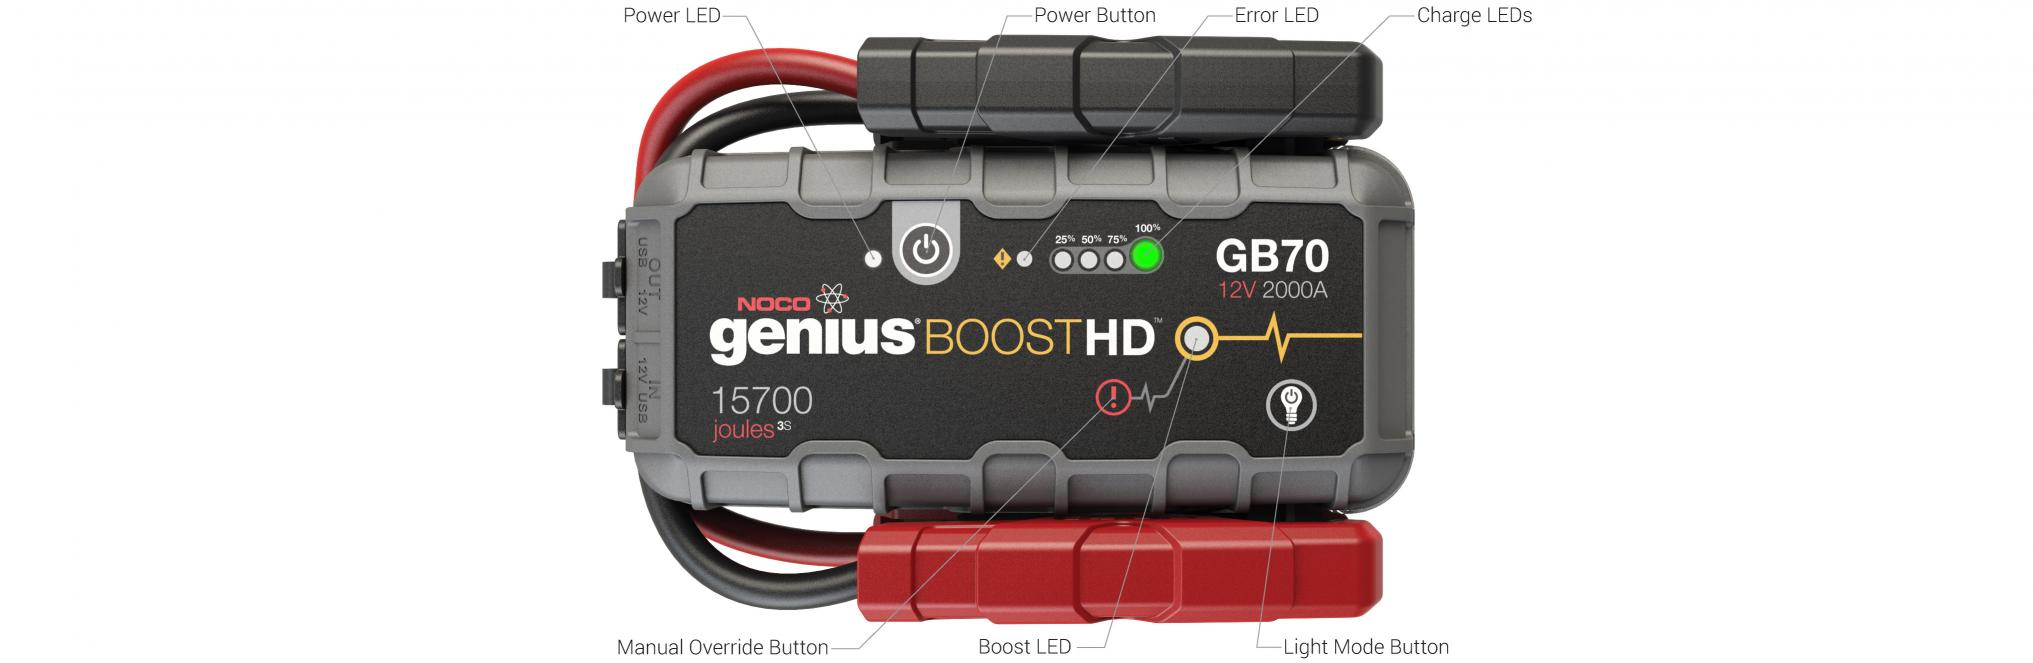 GB70-booster-noco-opis.jpg